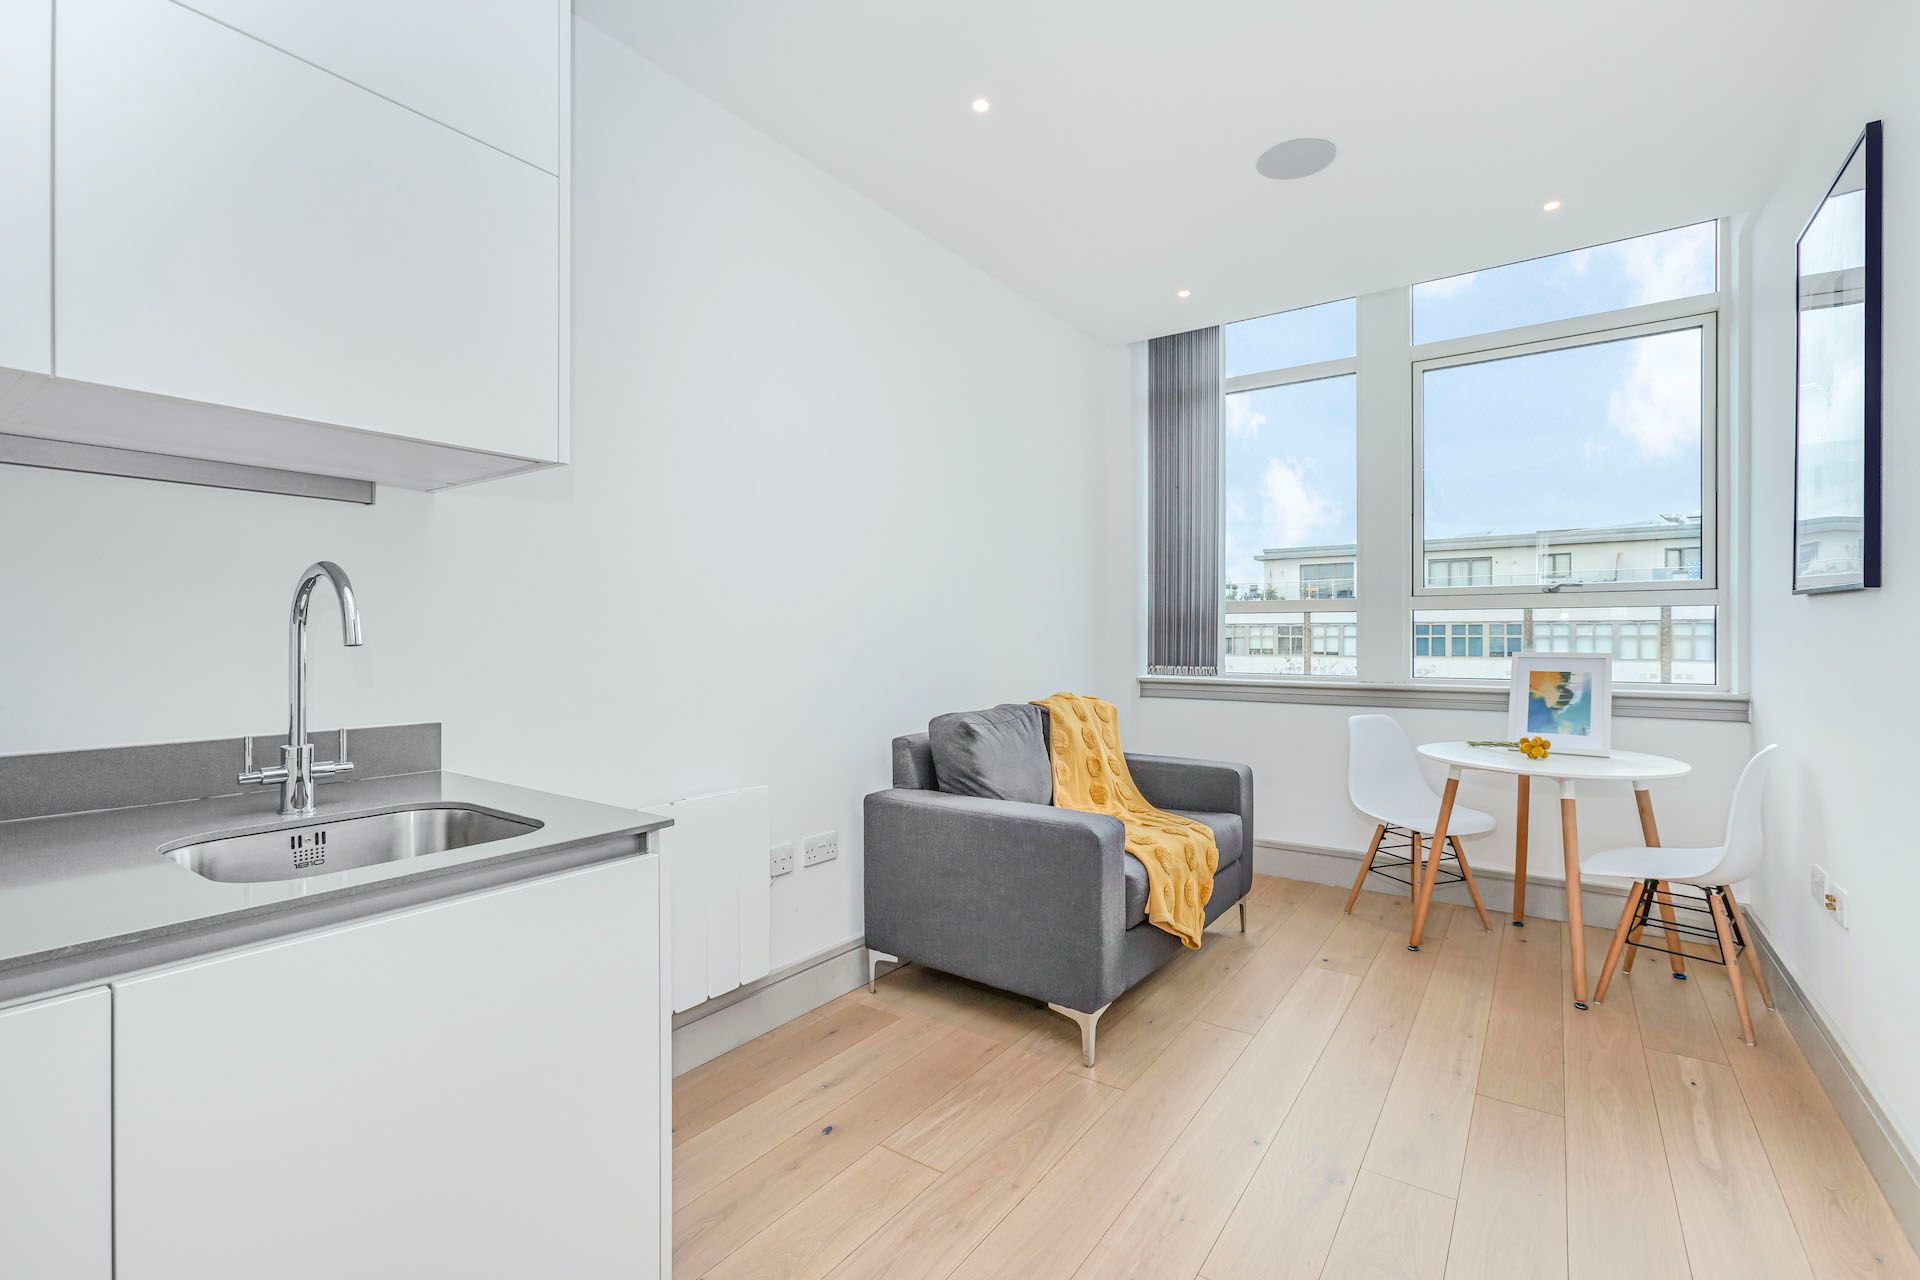 1 Bedroom apartment to rent in London BRO-BH-0114